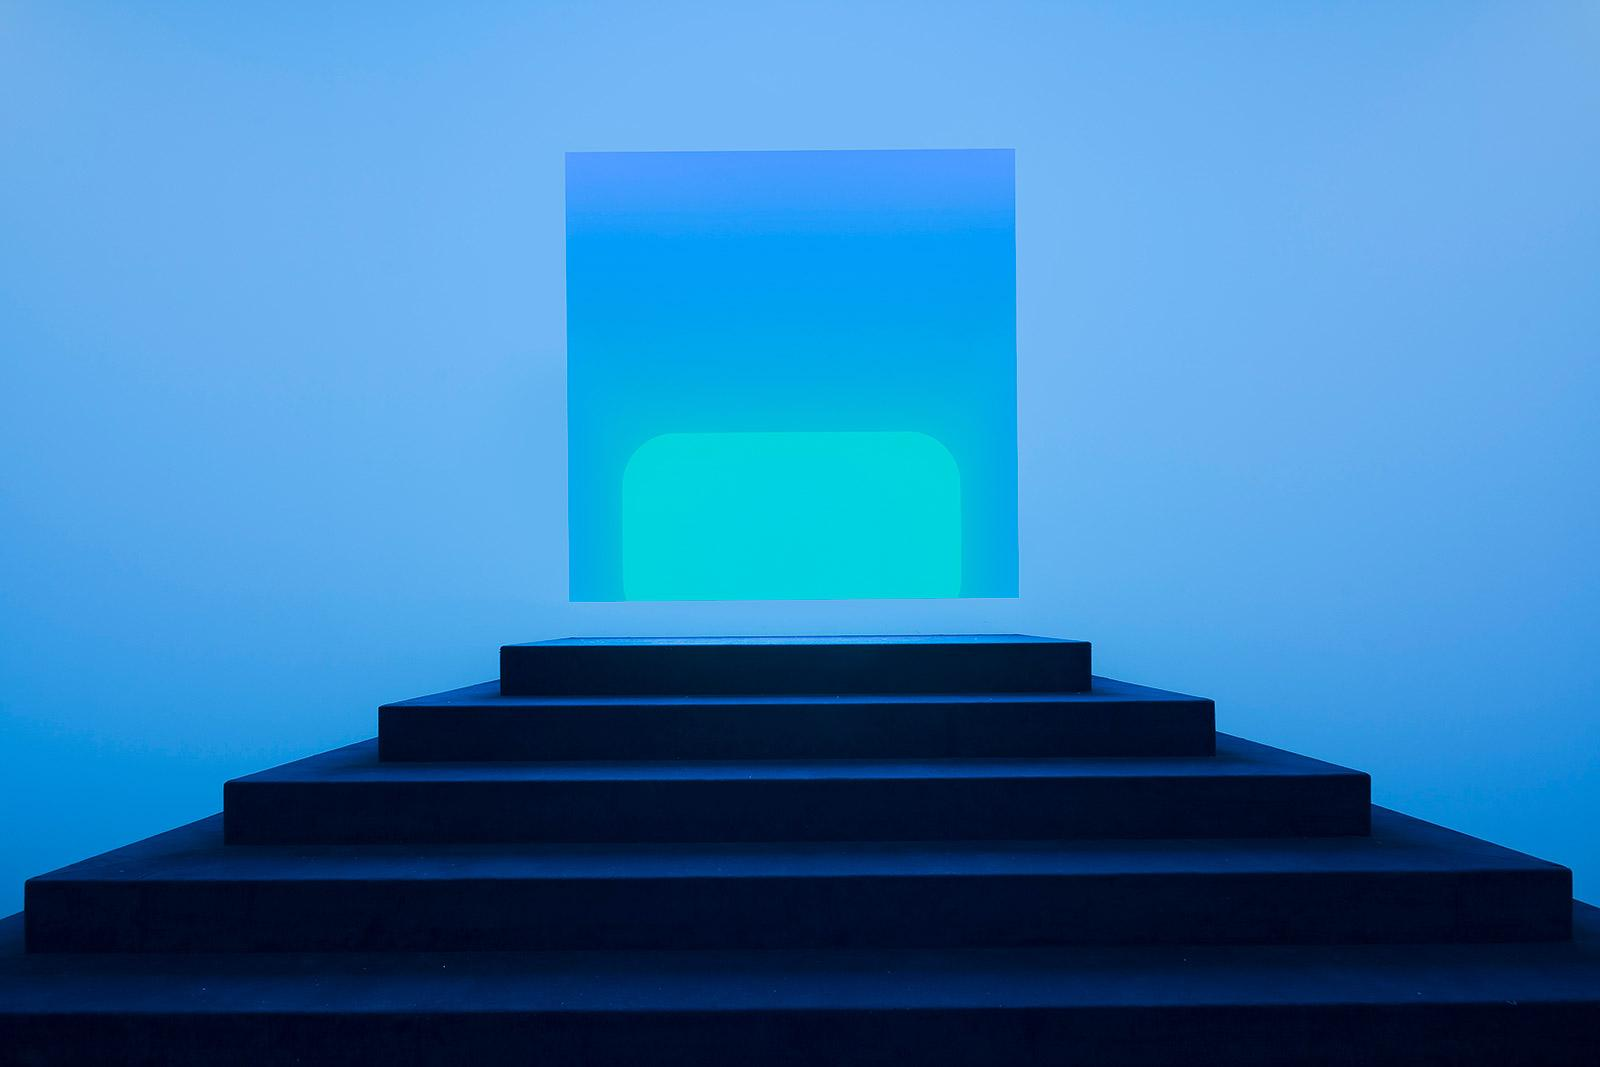 Staircase illuminated by a glowing blue light